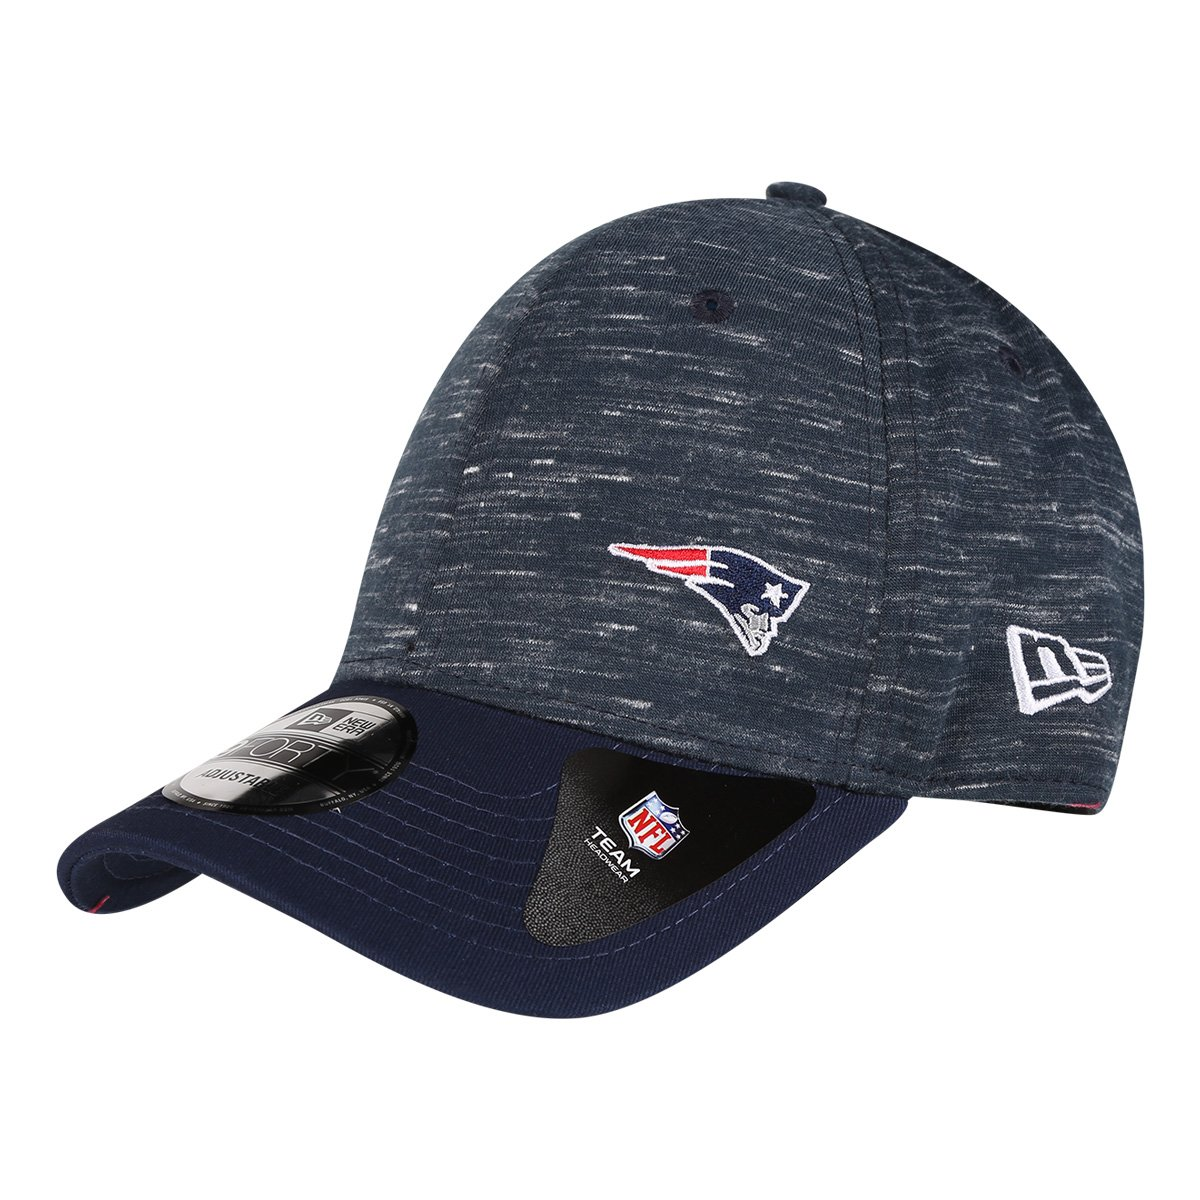 Boné New Era NFL New England Patriots Aba Curva 940 Hp Sn Flame Mini ... 5deece35571